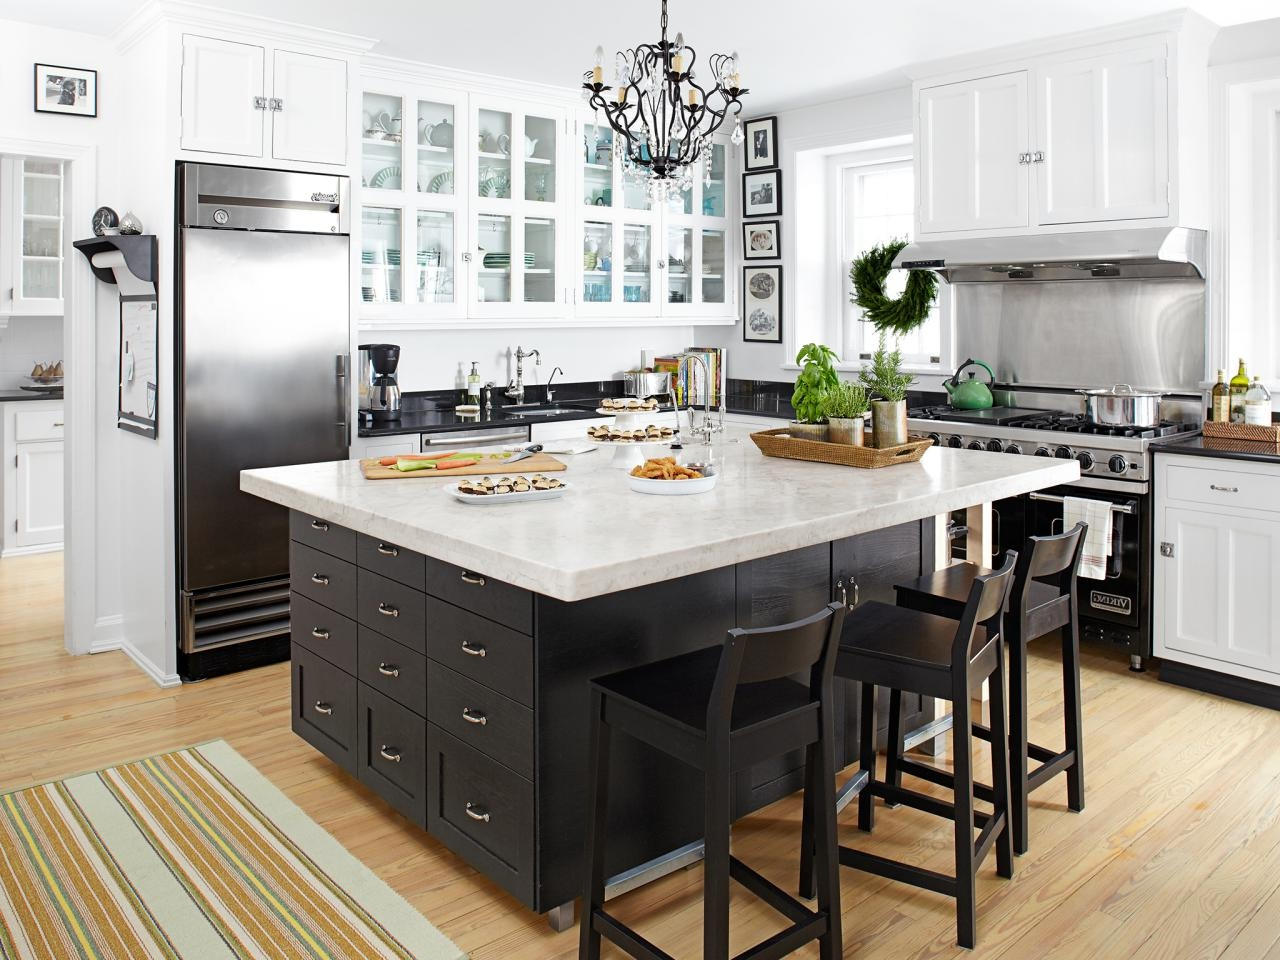 60 kitchen island ideas leaven up your cookery. Black Bedroom Furniture Sets. Home Design Ideas